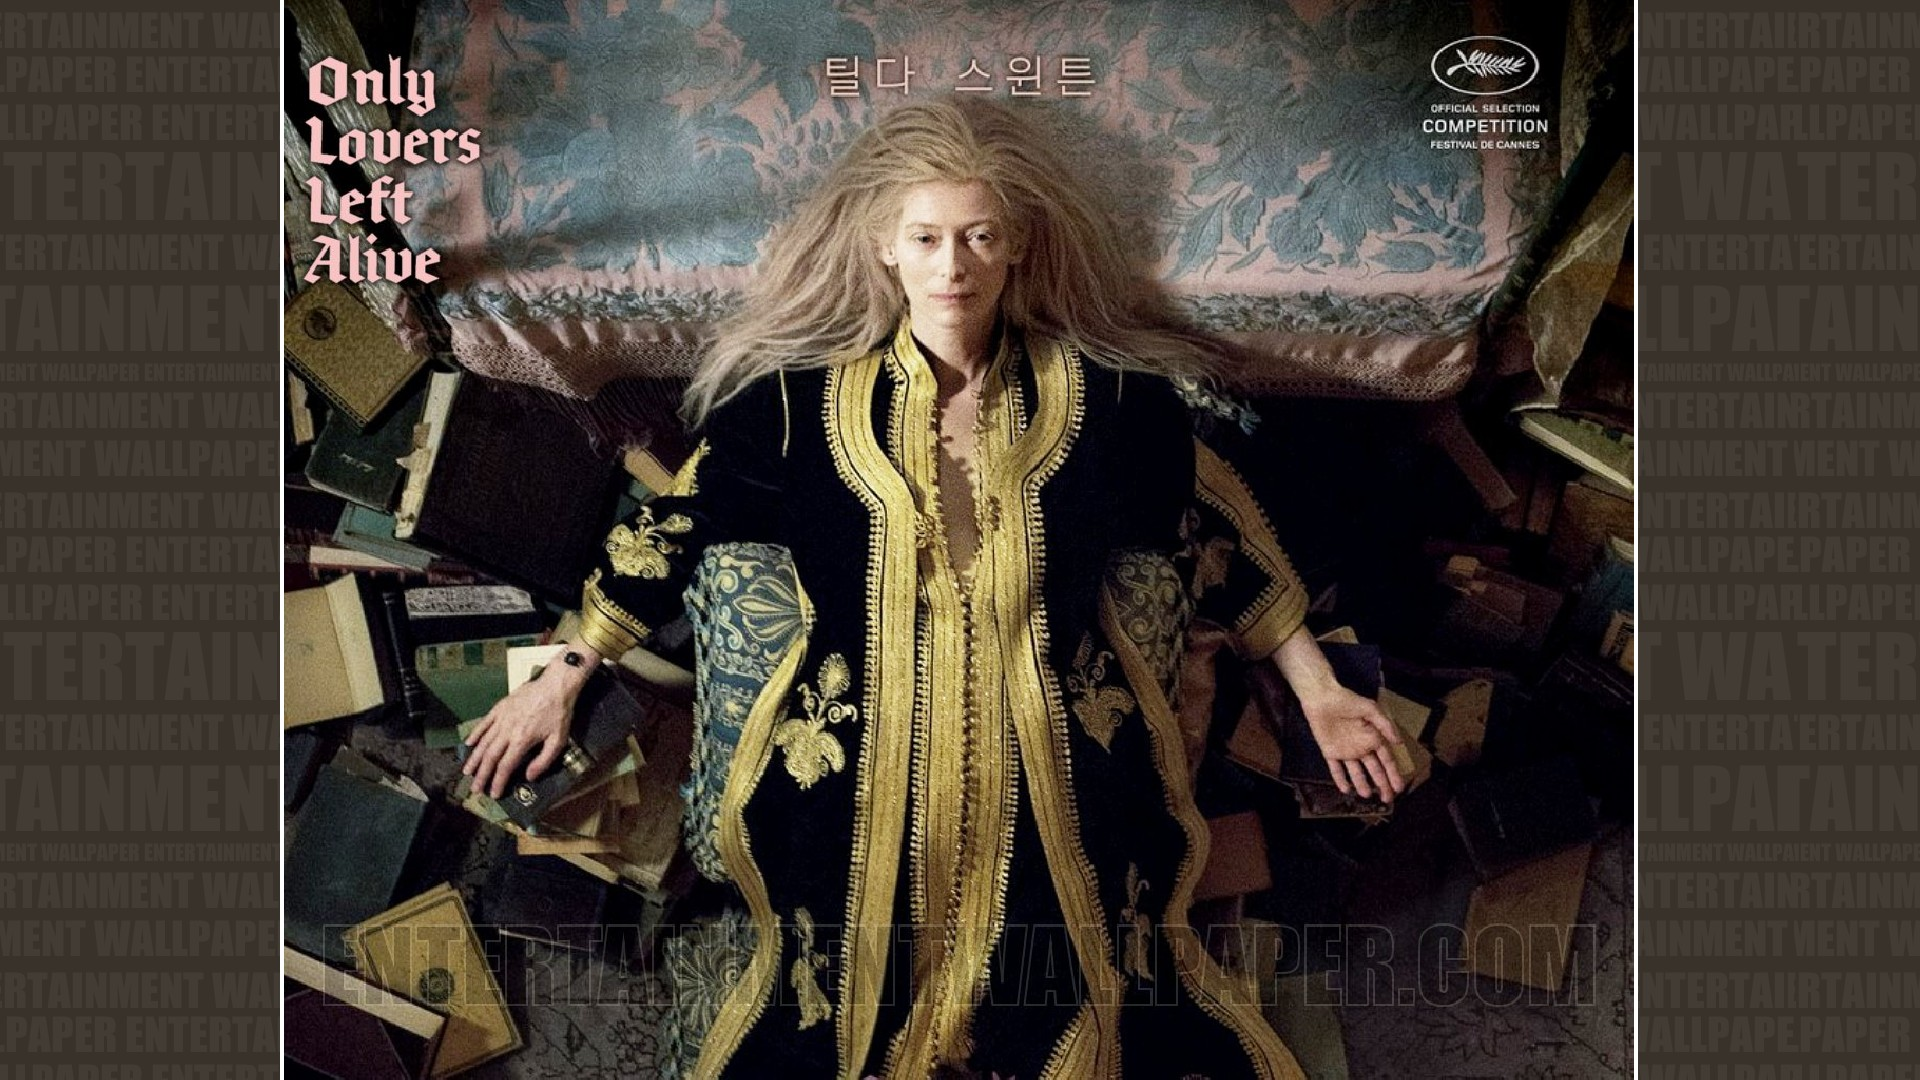 alive wallpaper 10043079 size 1920x1080 more only lovers left alive 1920x1080